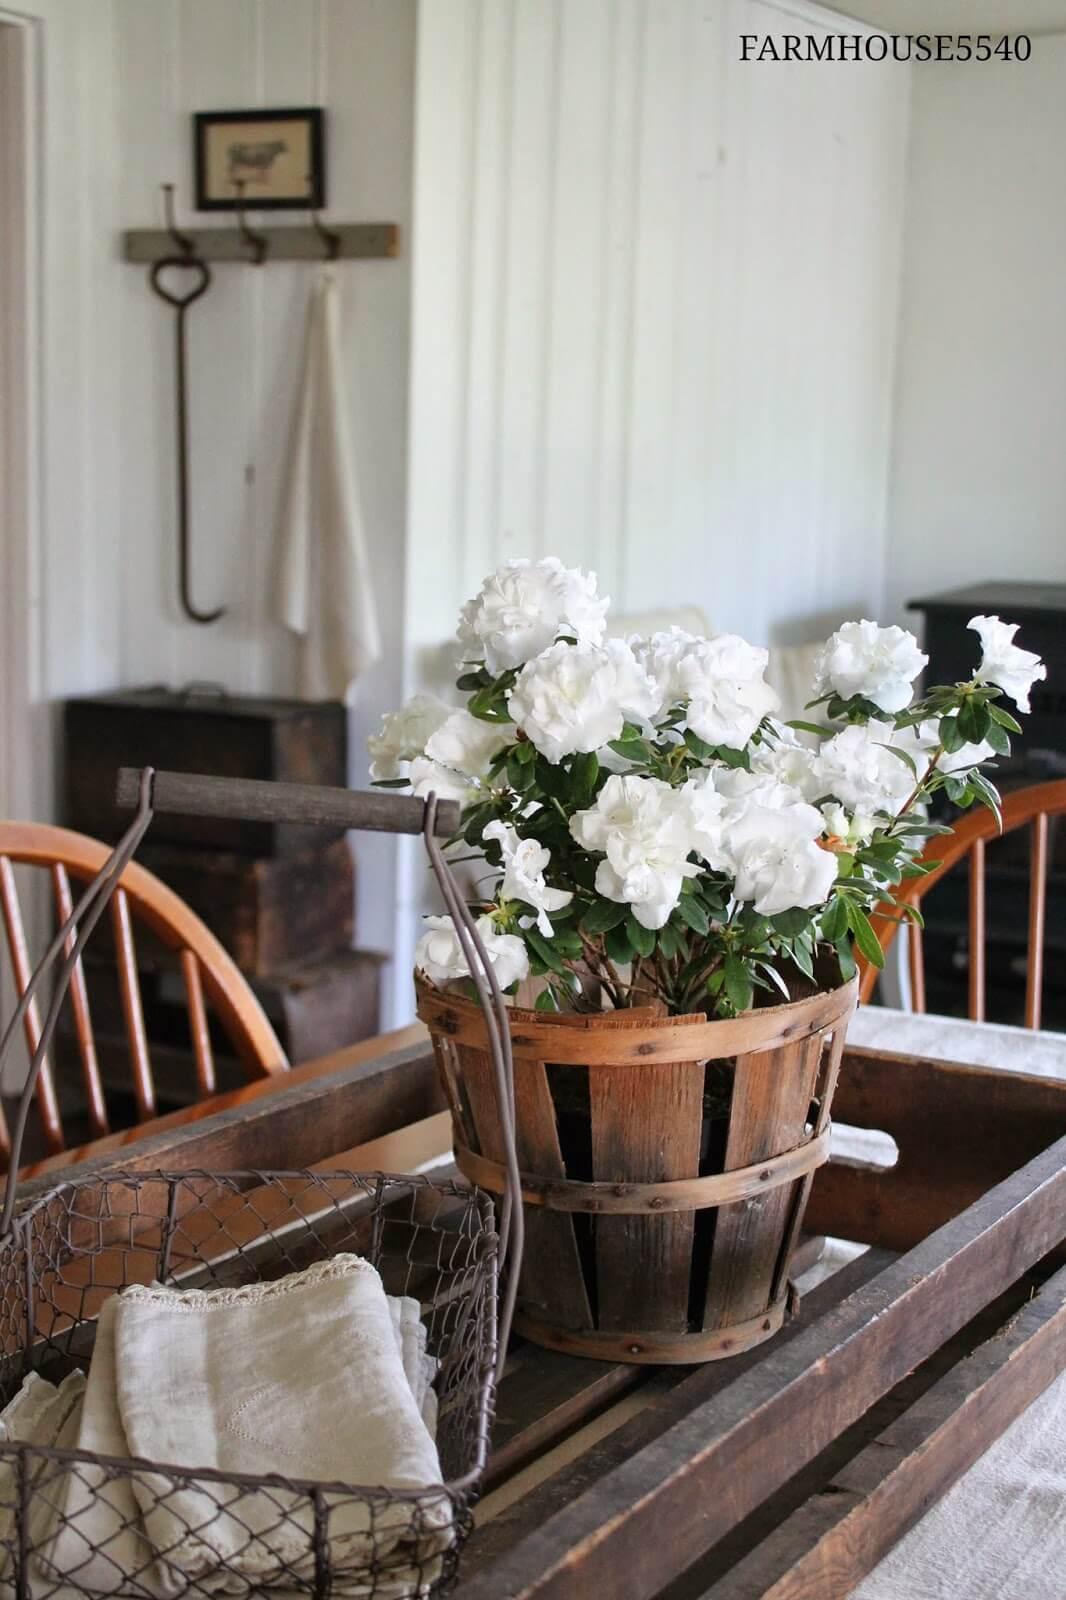 Farm Containers and Beautiful White Flowers